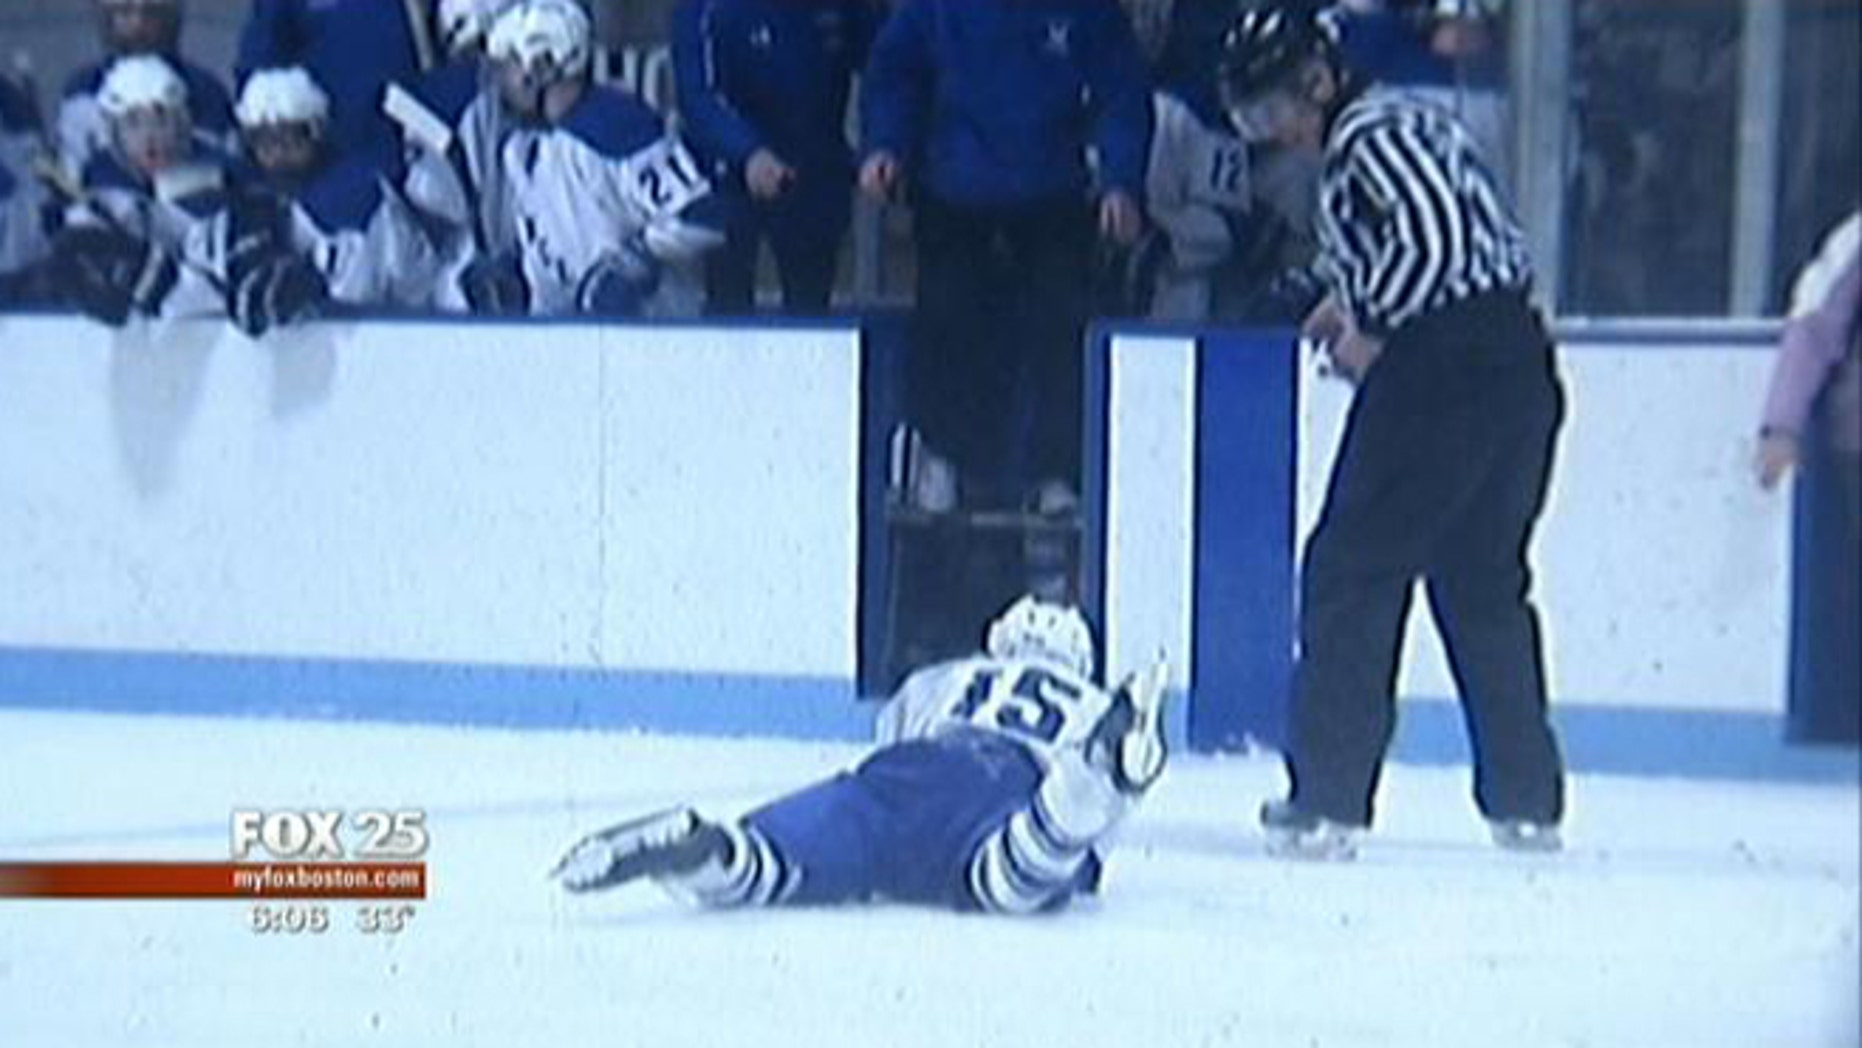 This image shows Brady Barron moments after his artery was severed by another player's skate.